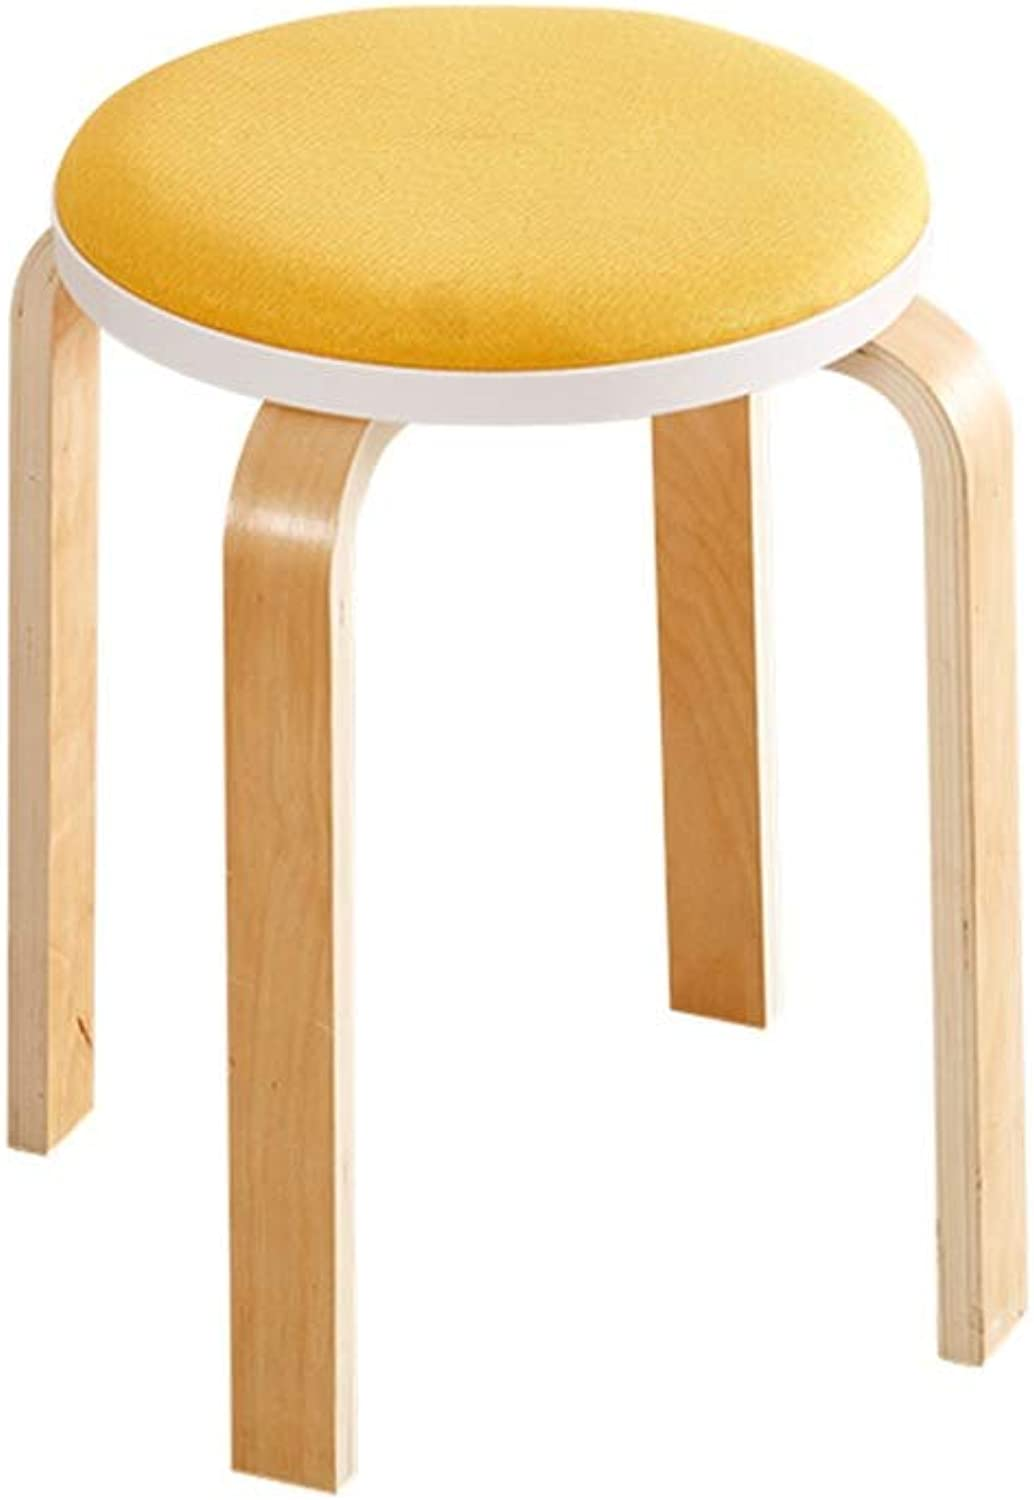 Living Room Chair, Kitchen Dining Table Dining Stool Restaurant Hotel Small Stool Bench Wood Cloth Arts High Stool (color   Yellow)